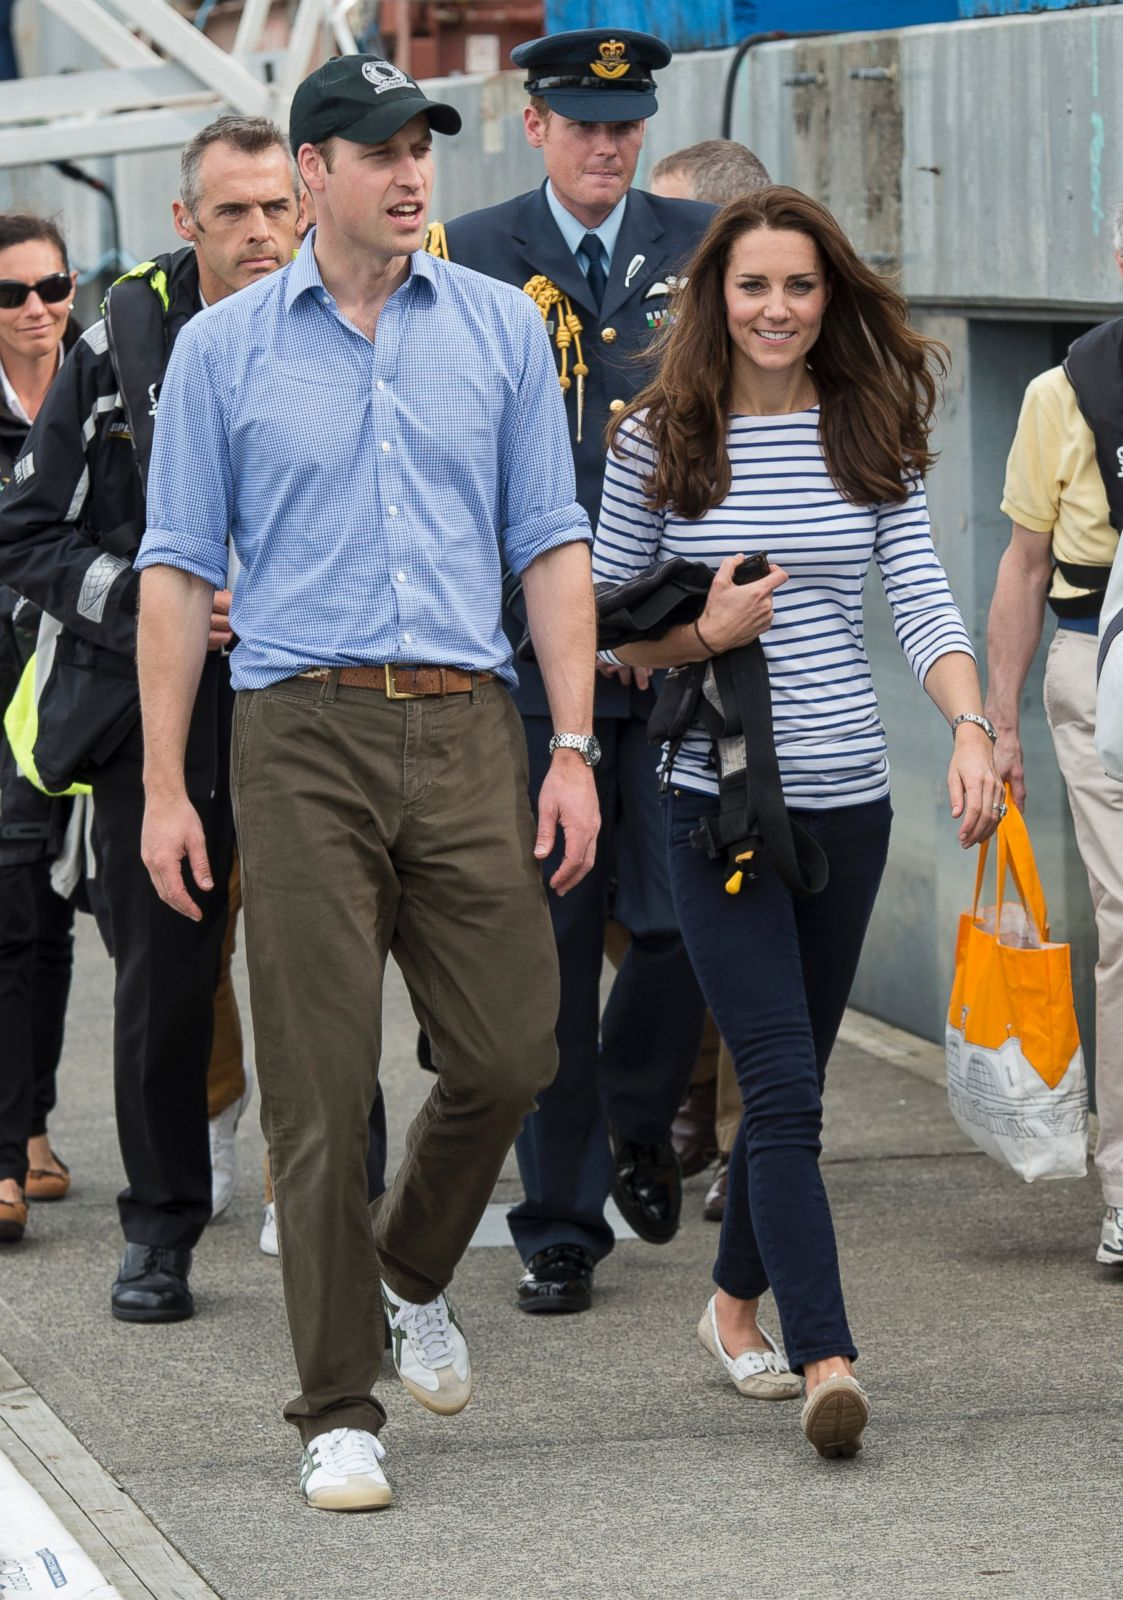 william and kate in new zealand